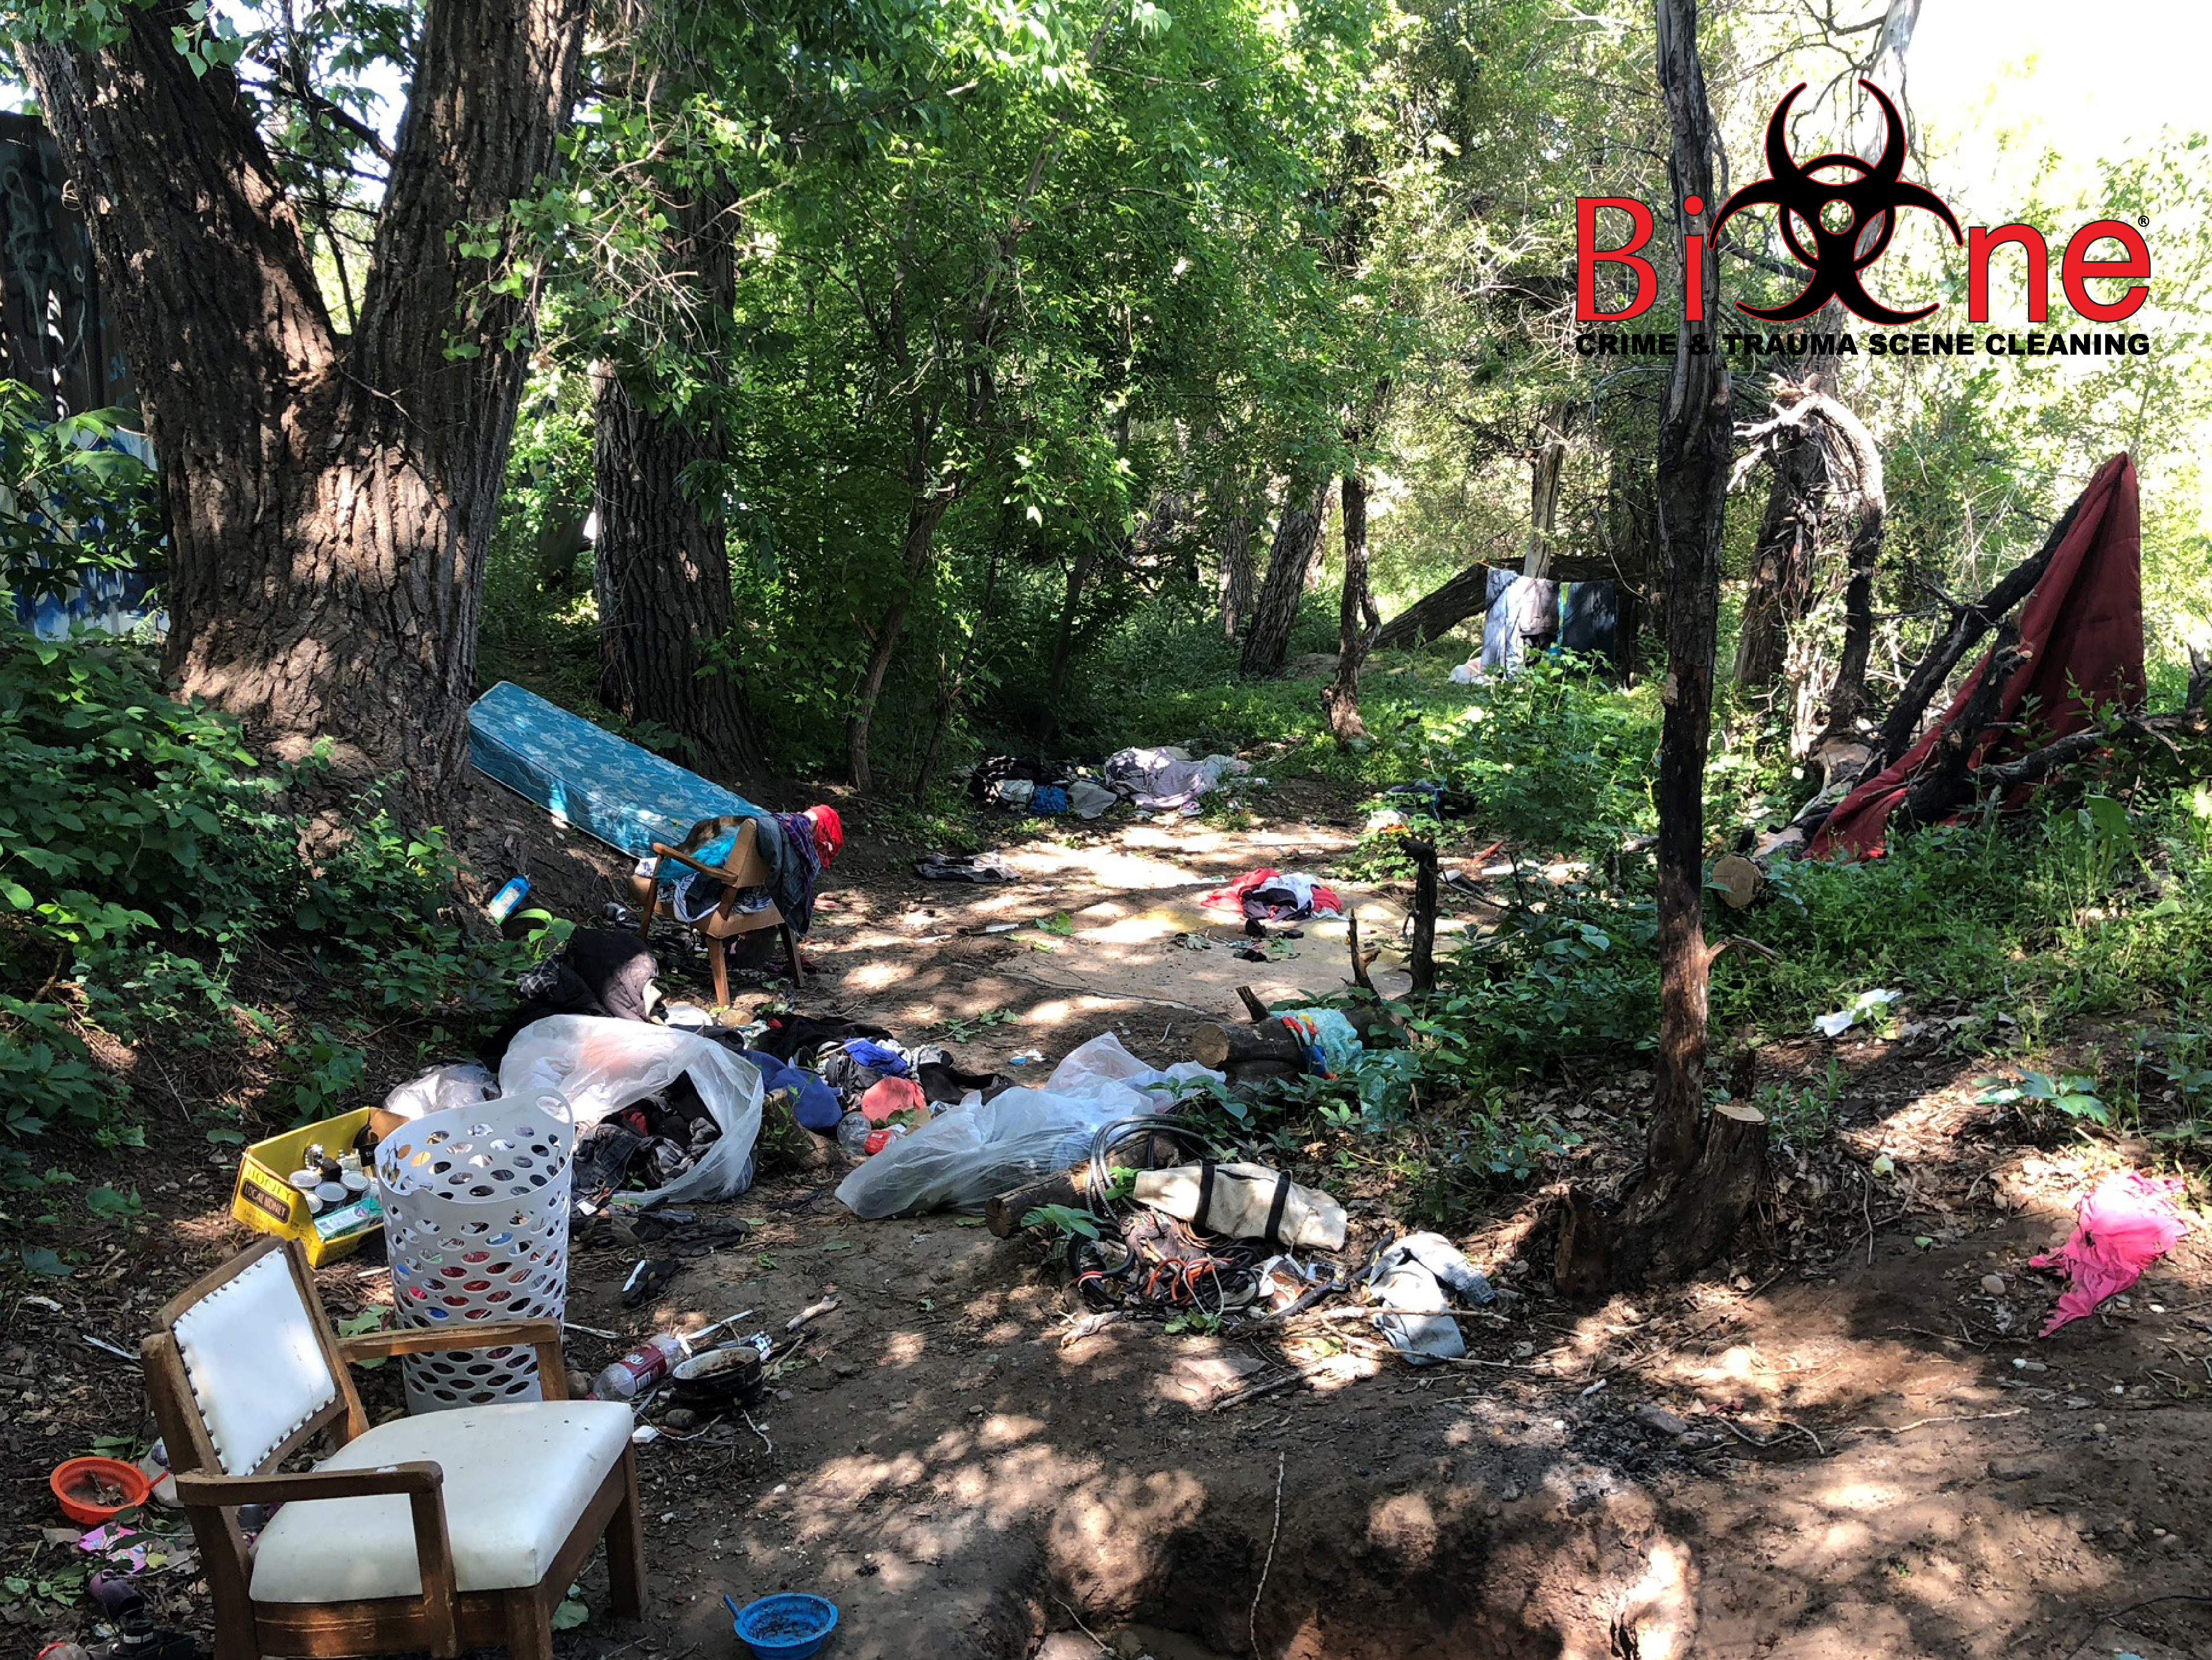 Homeless encampments pose multiple biohazards like sharp objects, rats, mice, cockroaches, and biological waste.